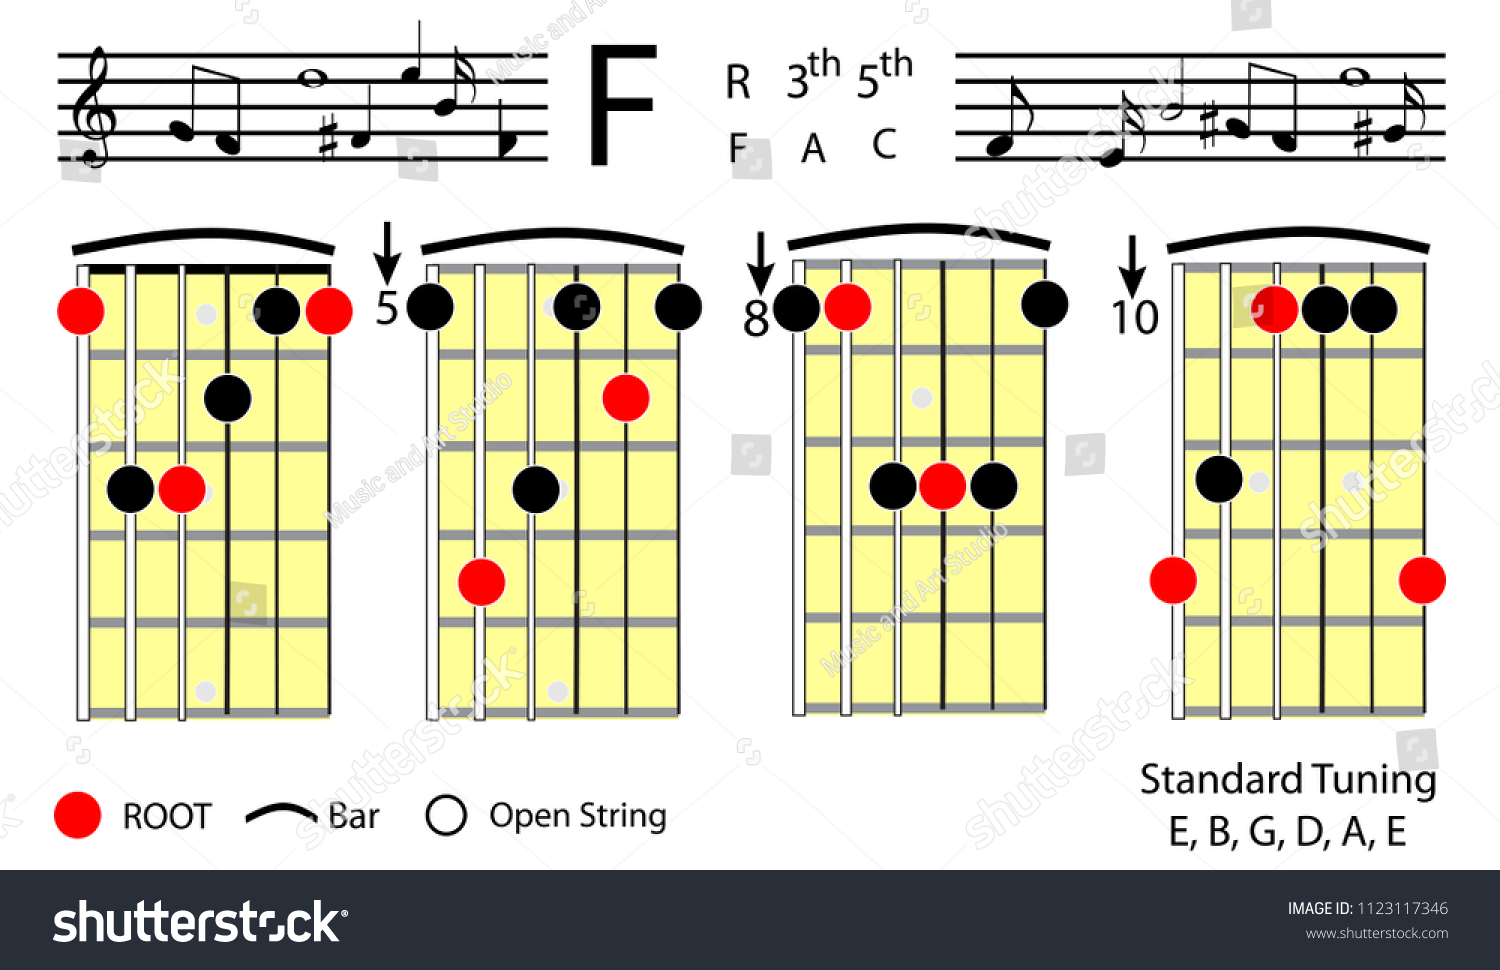 Guitar Chords Fmajor Basic Chord Diagram Stock Vector Royalty Free